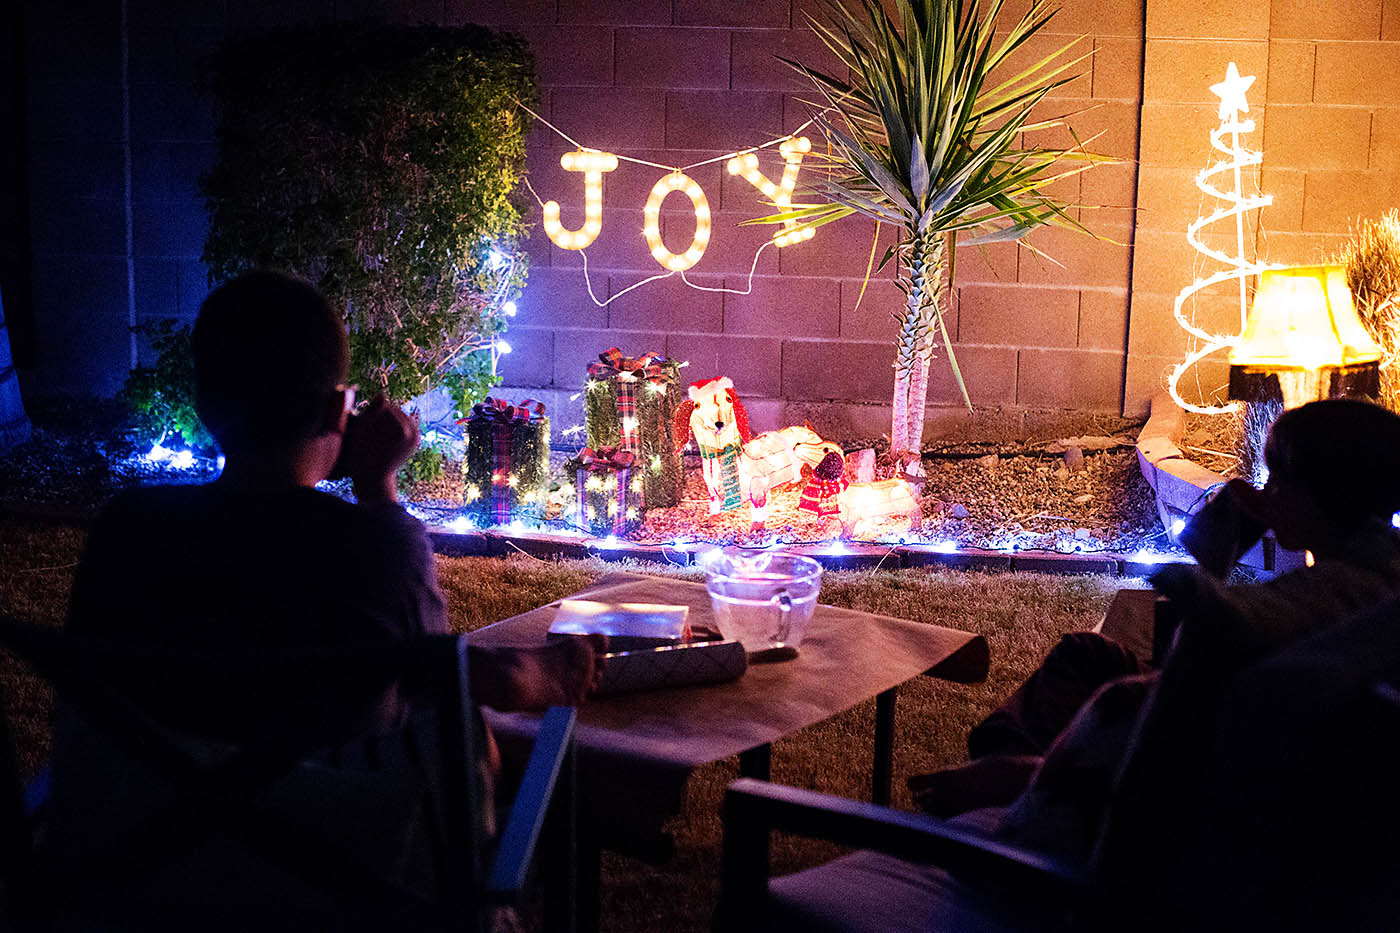 Get your BACKyard ready for holiday entertaining!